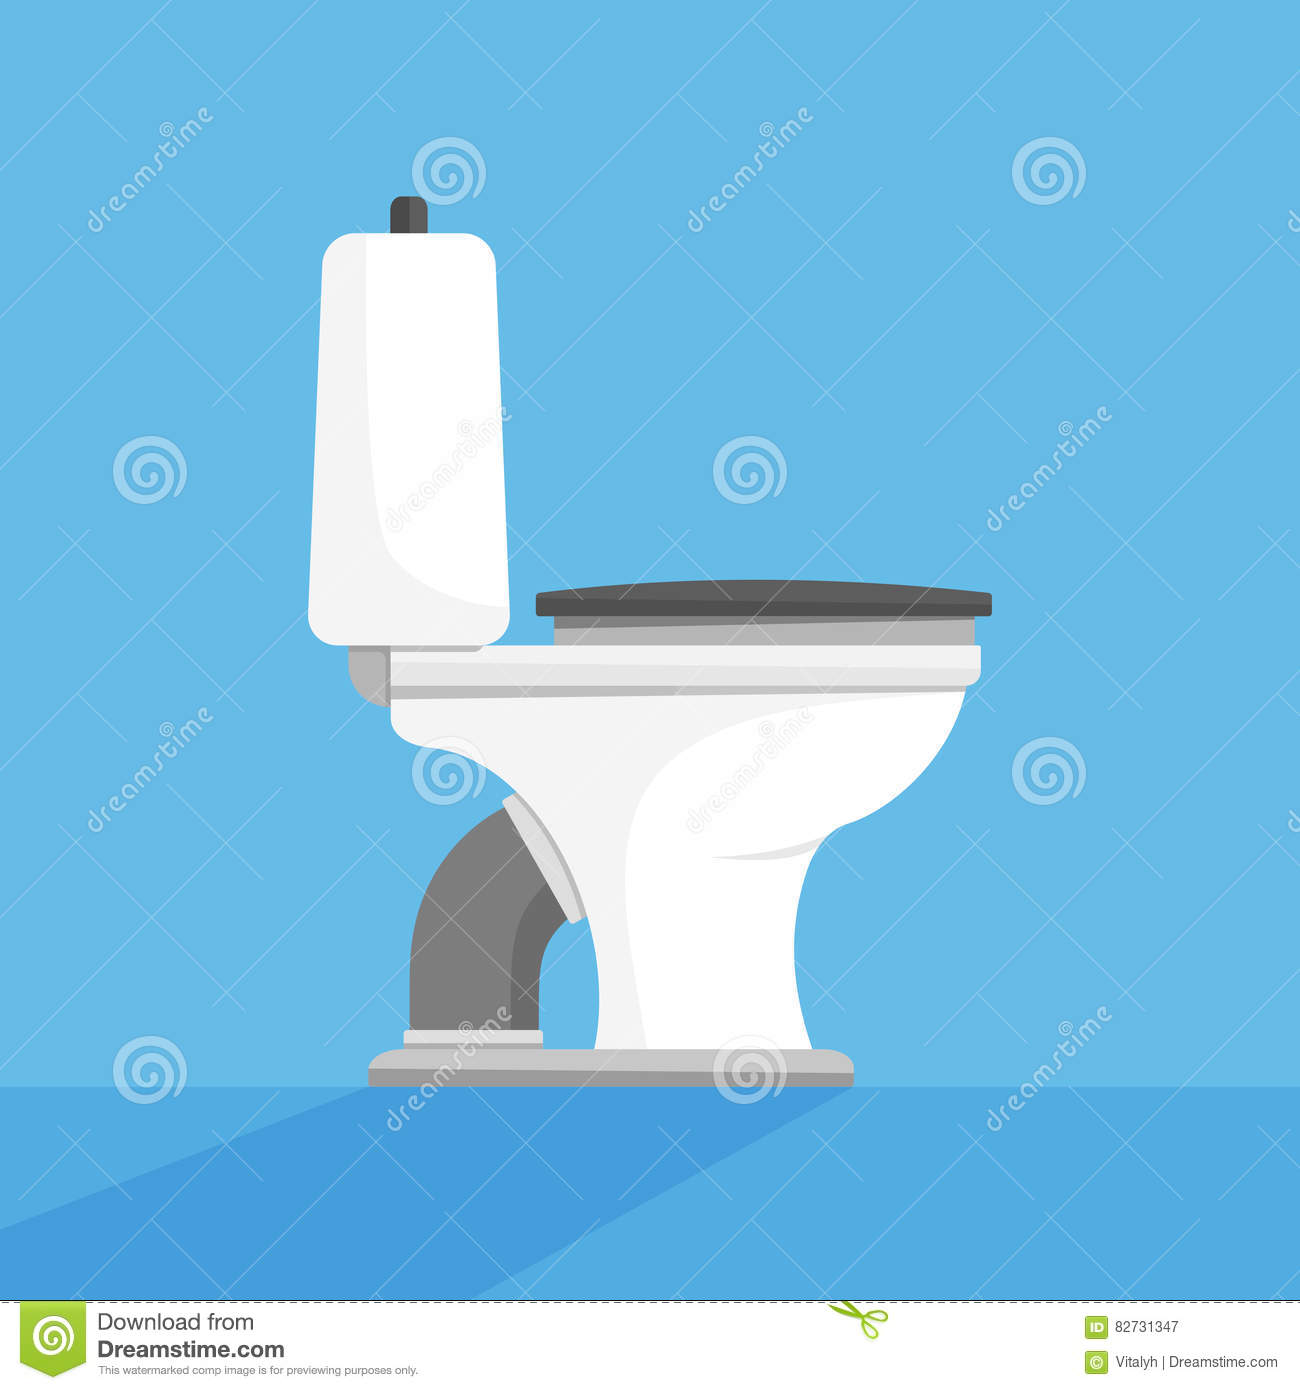 Toilet Seat Bowl Flat Vector Illustration